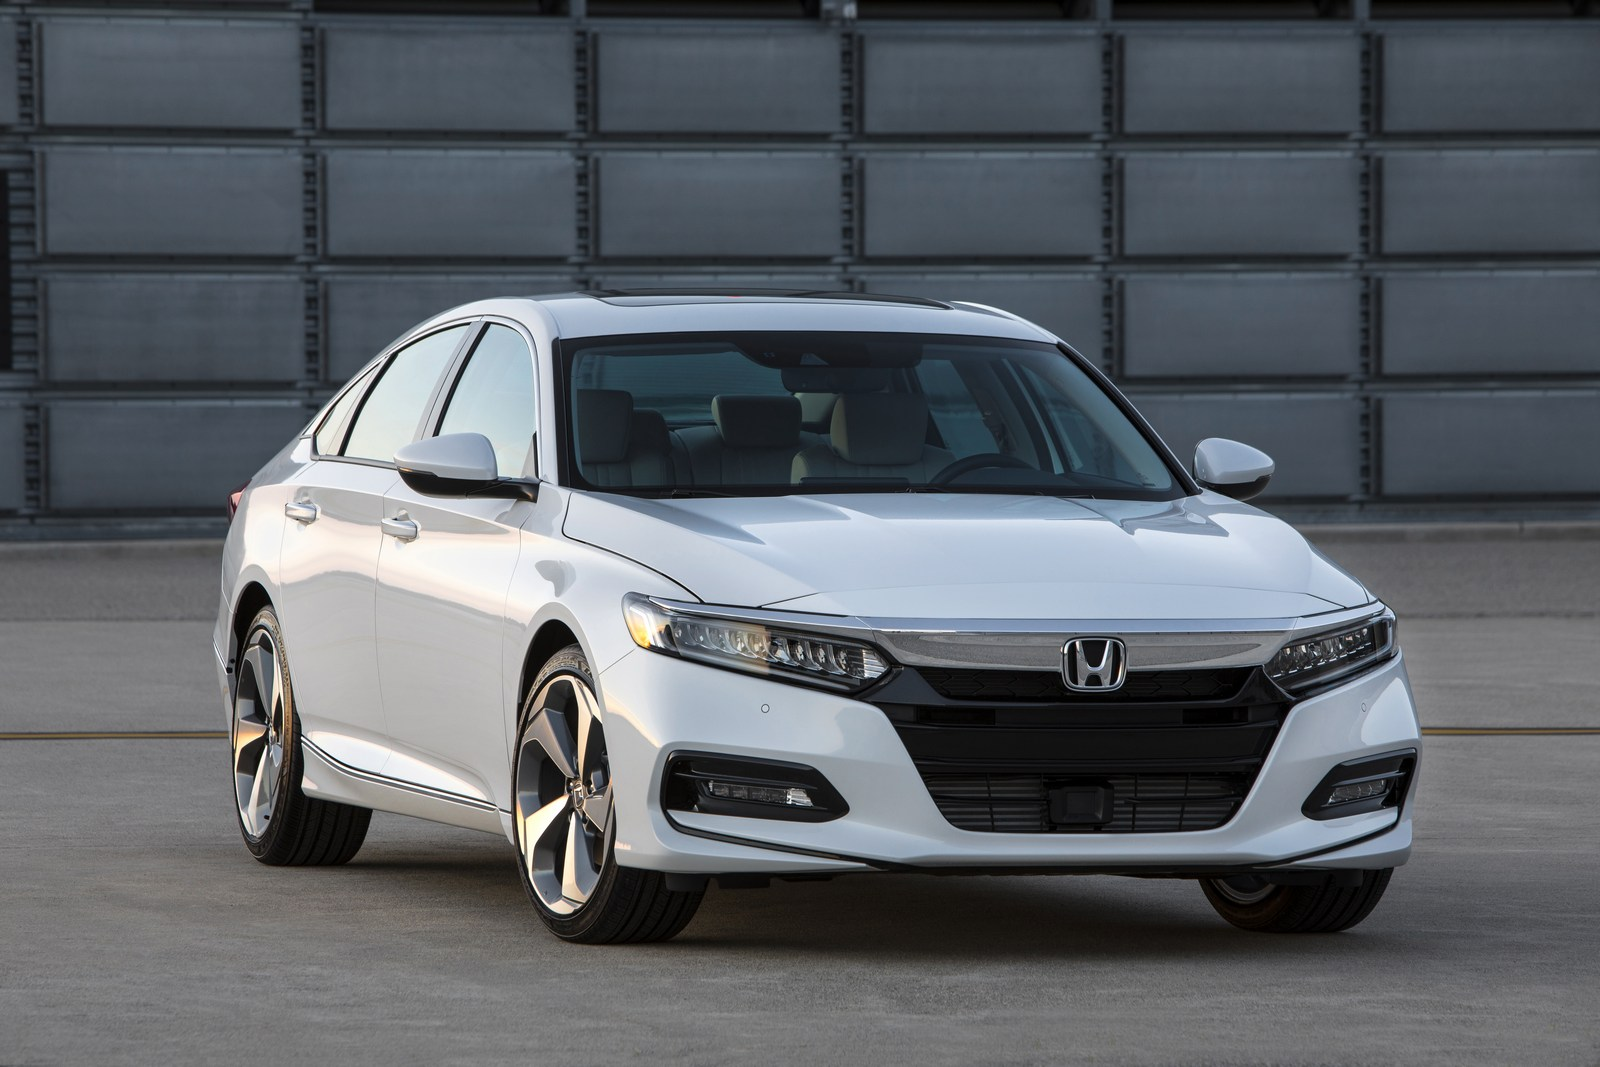 2018 honda accord goes official with 1 5 and 2 0 turbo